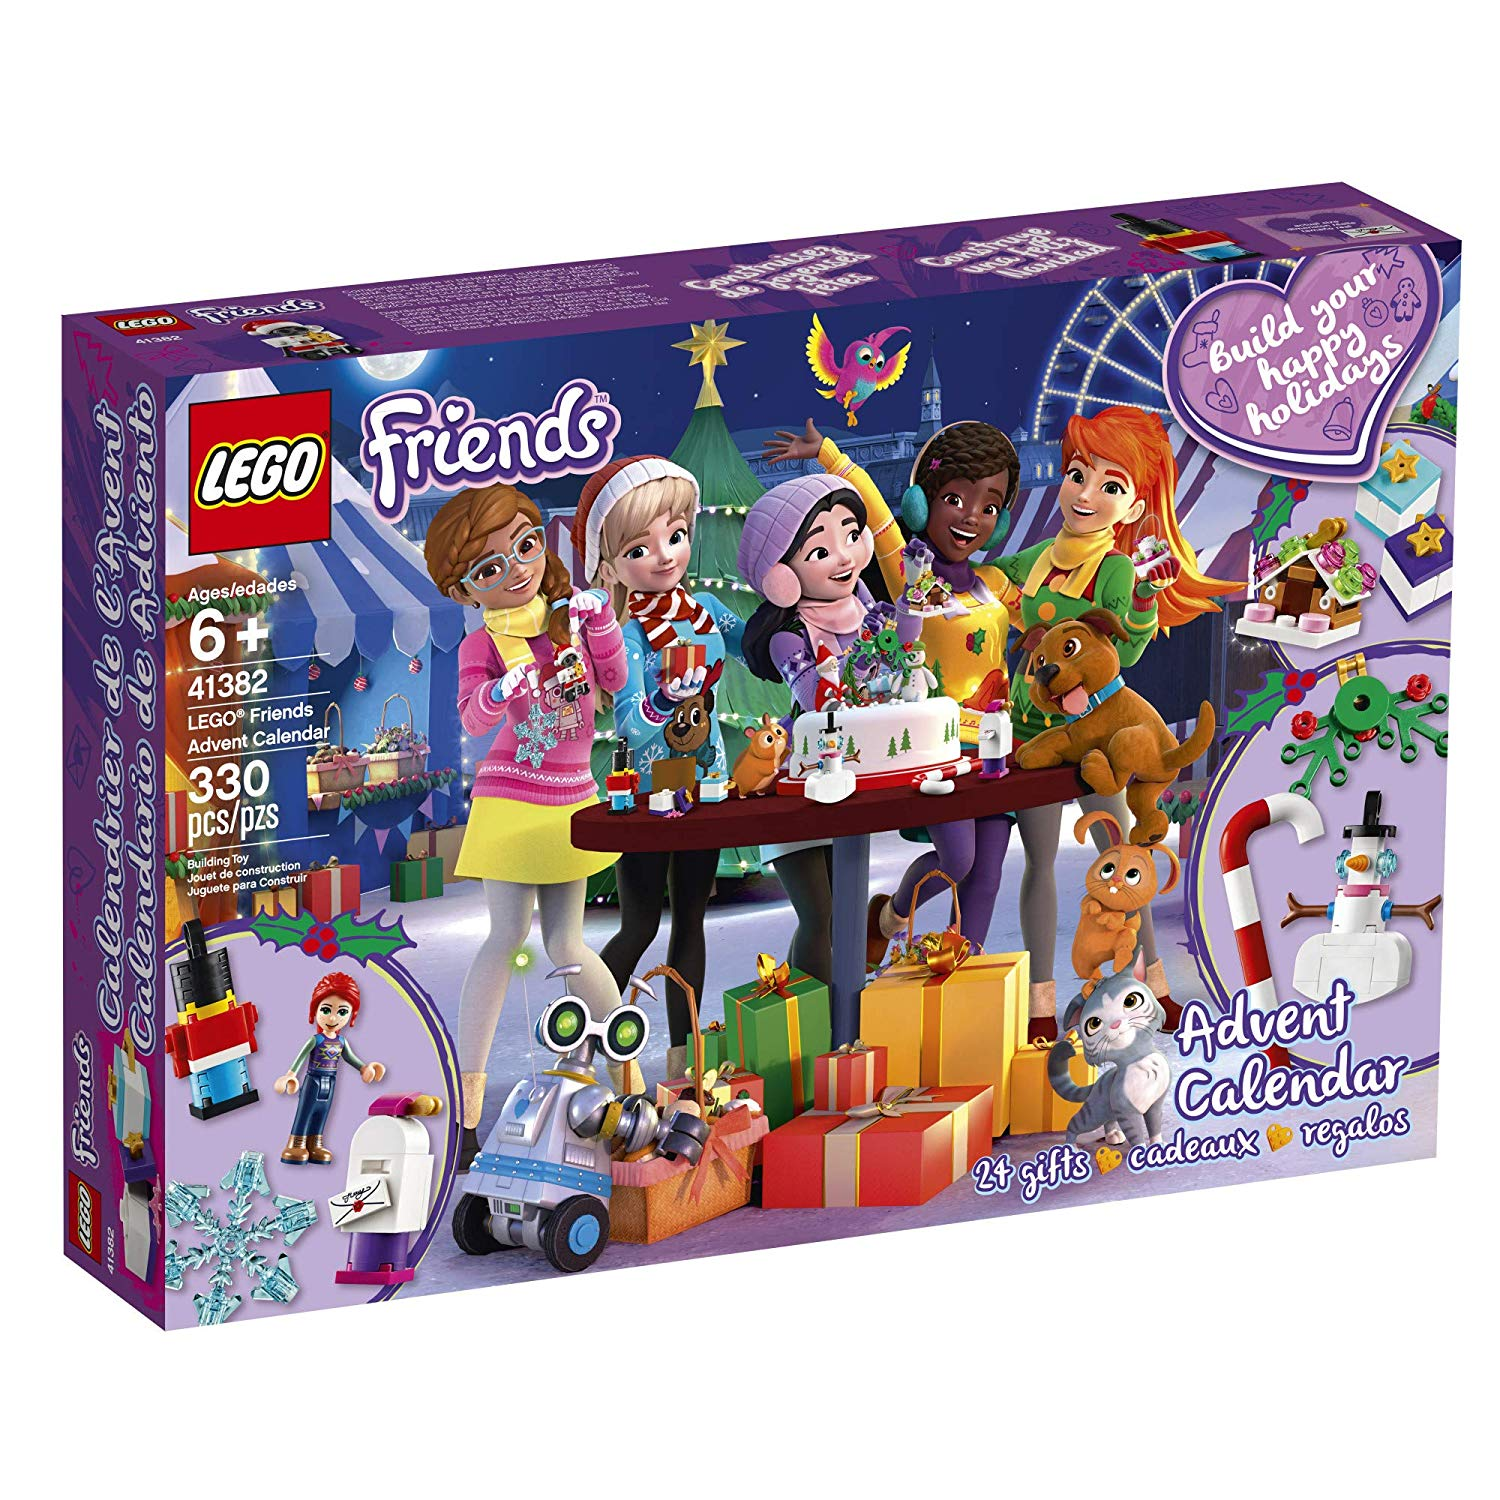 World Of Tanks Advent Calendar 2020.Lego Advent Calendar 2019 Revealed And Available For Pre Order On